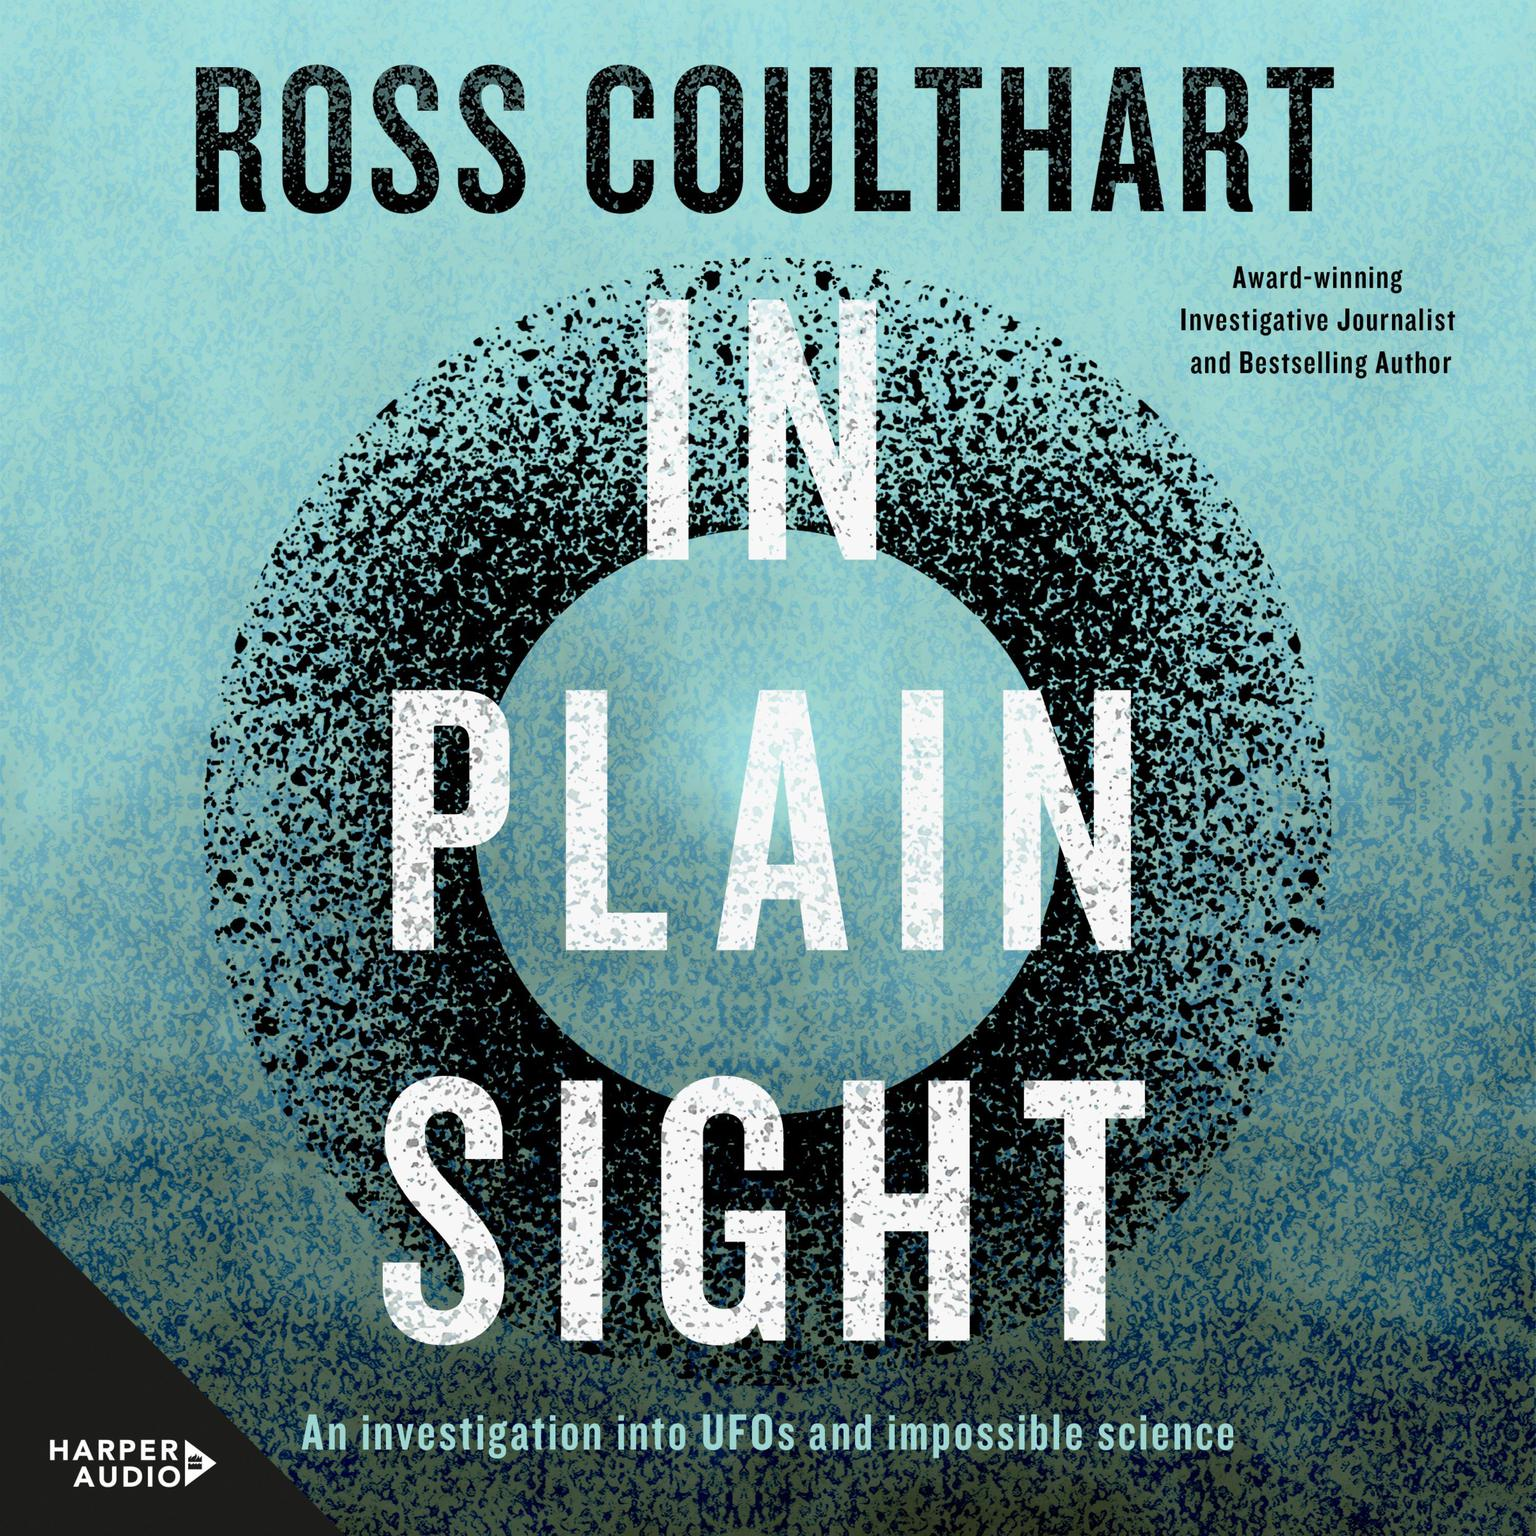 In Plain Sight: An investigation into UFOs and impossible science Audiobook, by Ross Coulthart